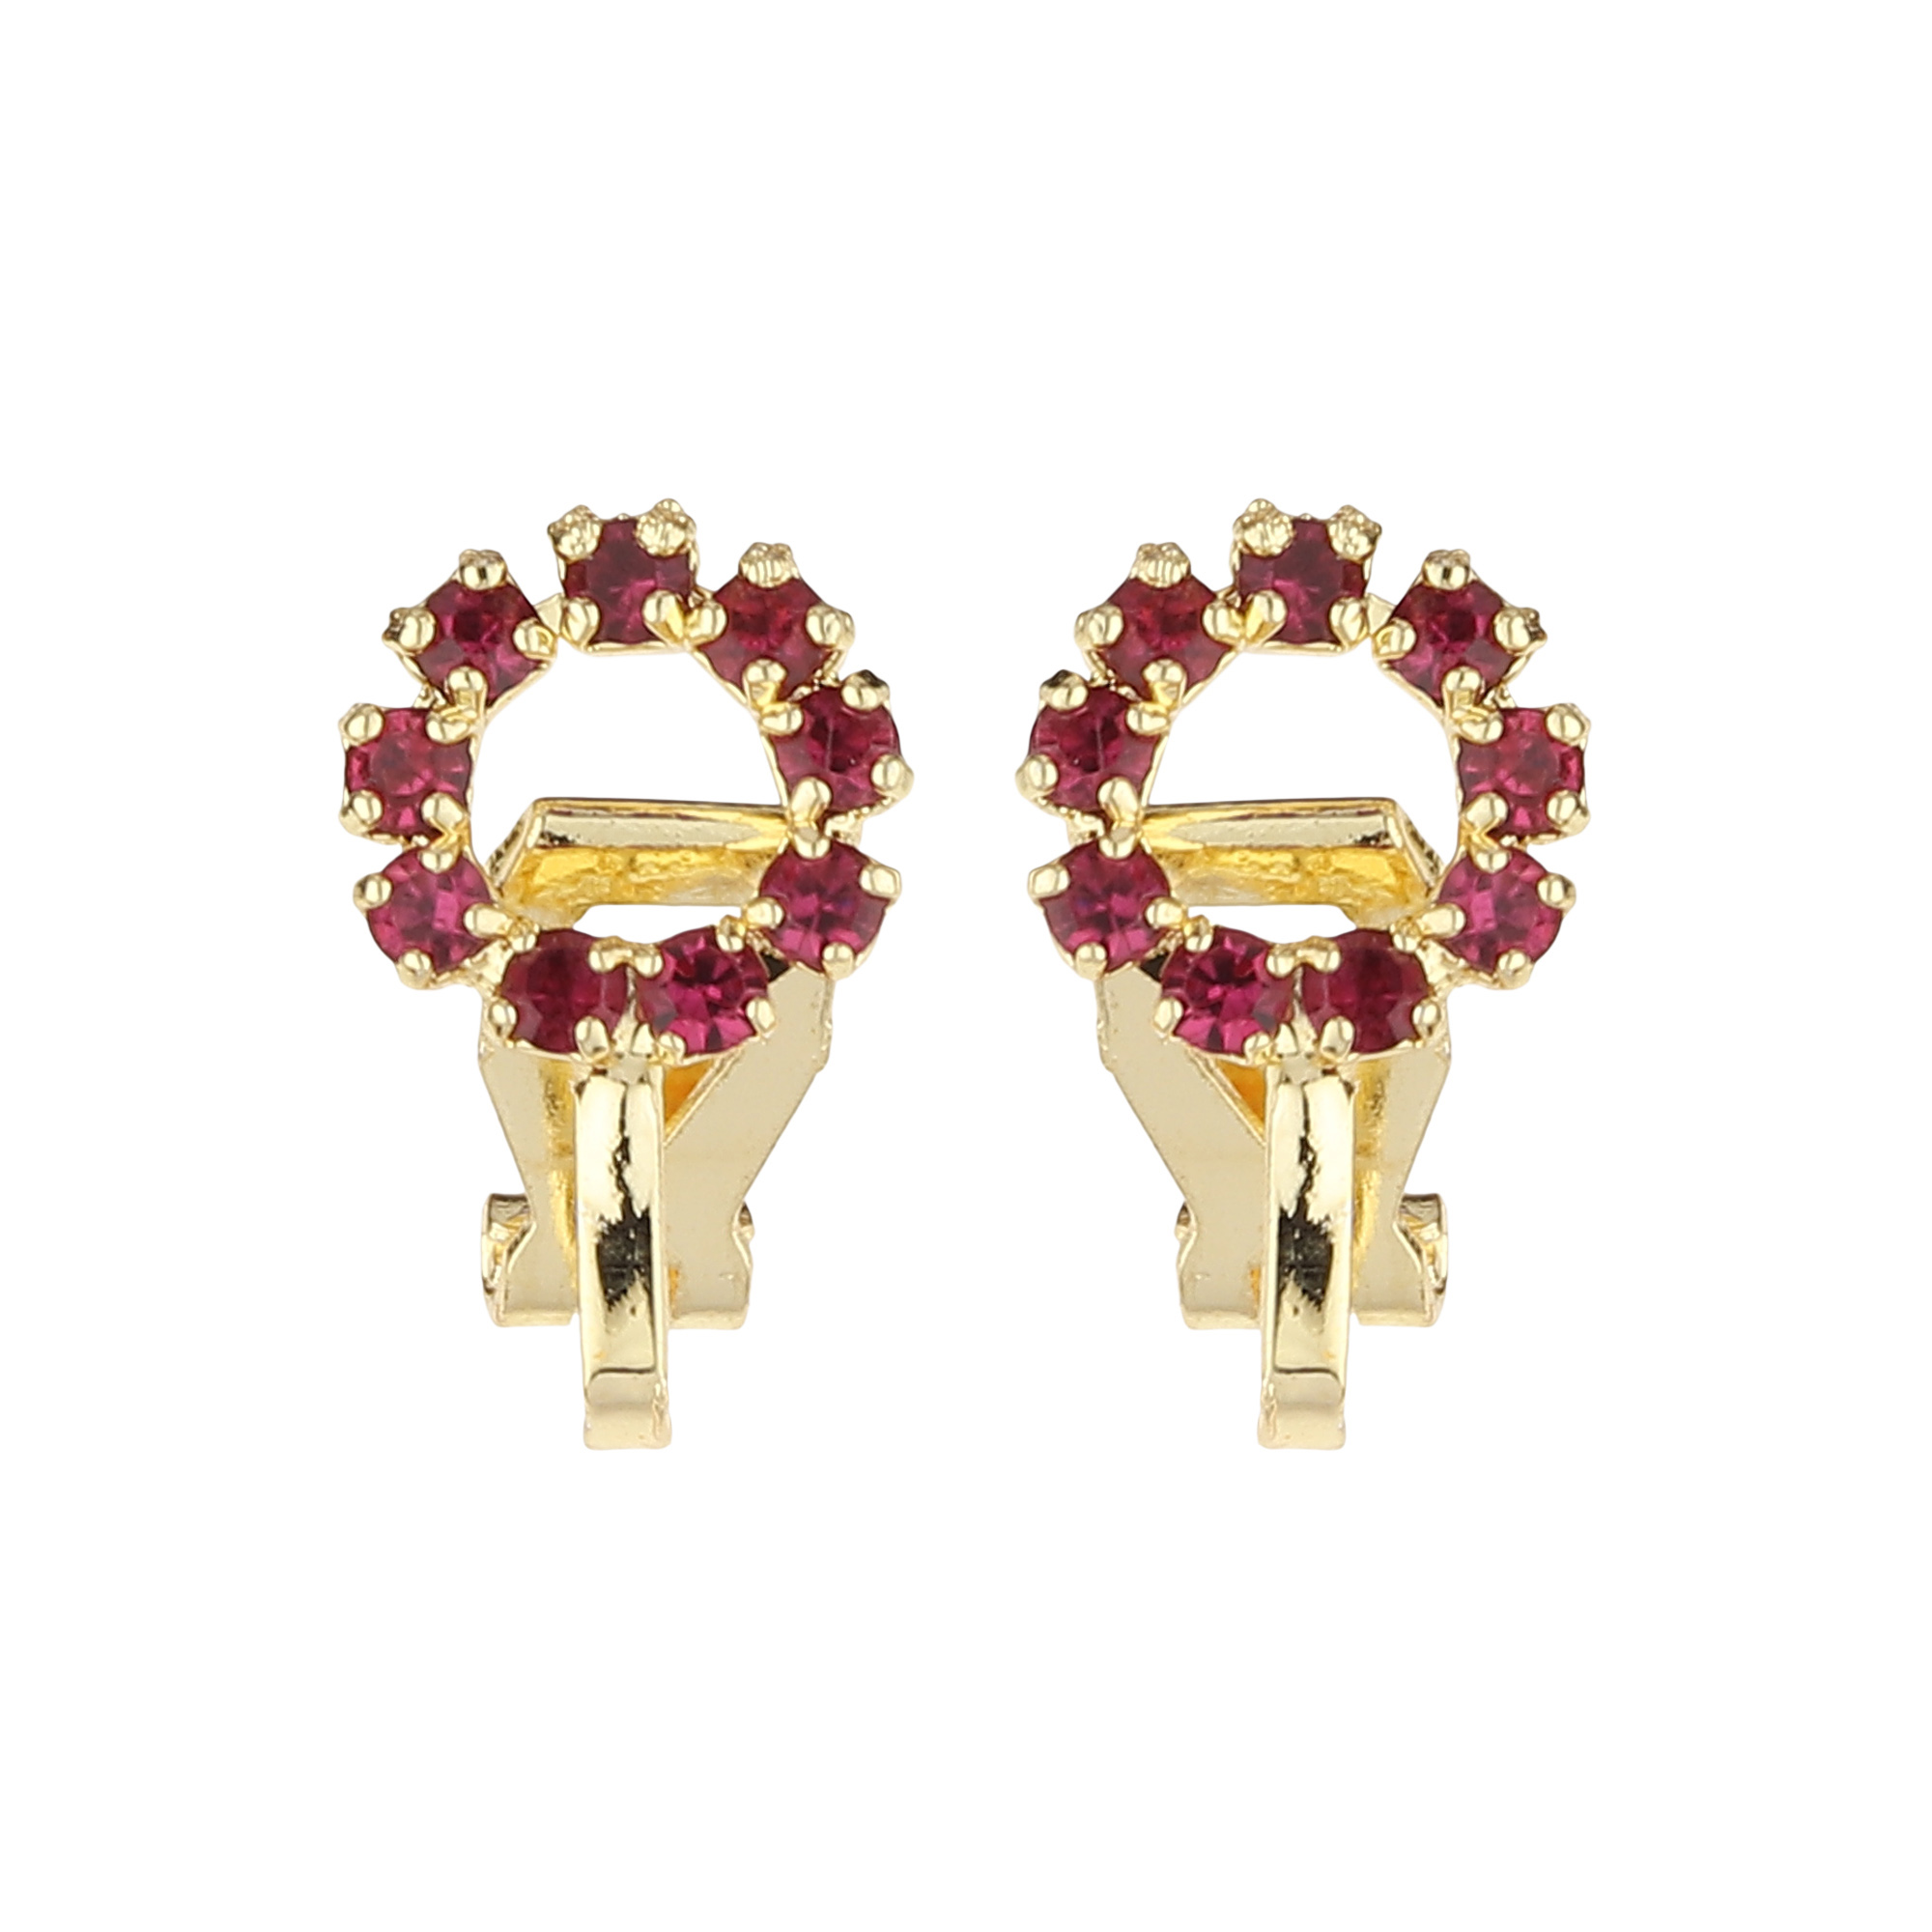 FirstBlush   FirstBlush Clip On Earrings for Non Piearced Ears for Women & Girls; Plating: Gold; Color: Magenta (Pink); Size: 10 X 10mm; Wt.: 3gm. (MIEC104M131)